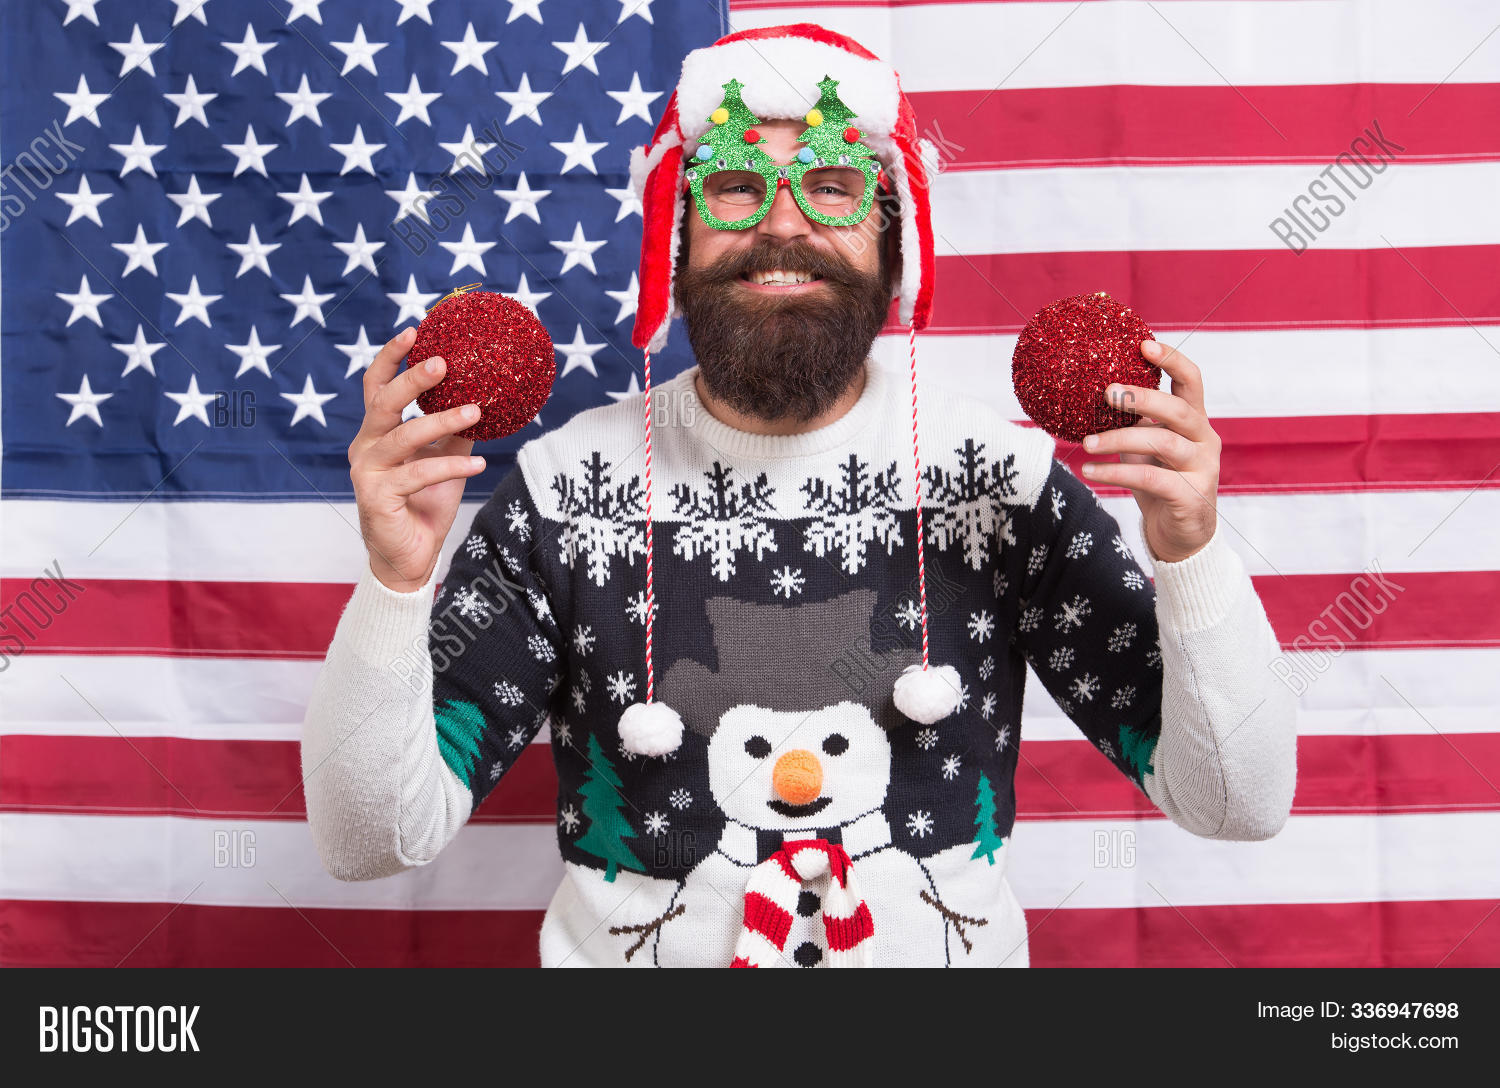 2020,accessory,all,america,american,background,balls,bearded,celebrate,celebration,christmas,claus,country,december,decor,eve,flag,from,hipster,holiday,justice,knitted,liberty,man,my,national,new,party,patriotic,patriotism,santa,snowman,states,sweater,tradition,traditional,united,usa,wear,winter,xmas,year